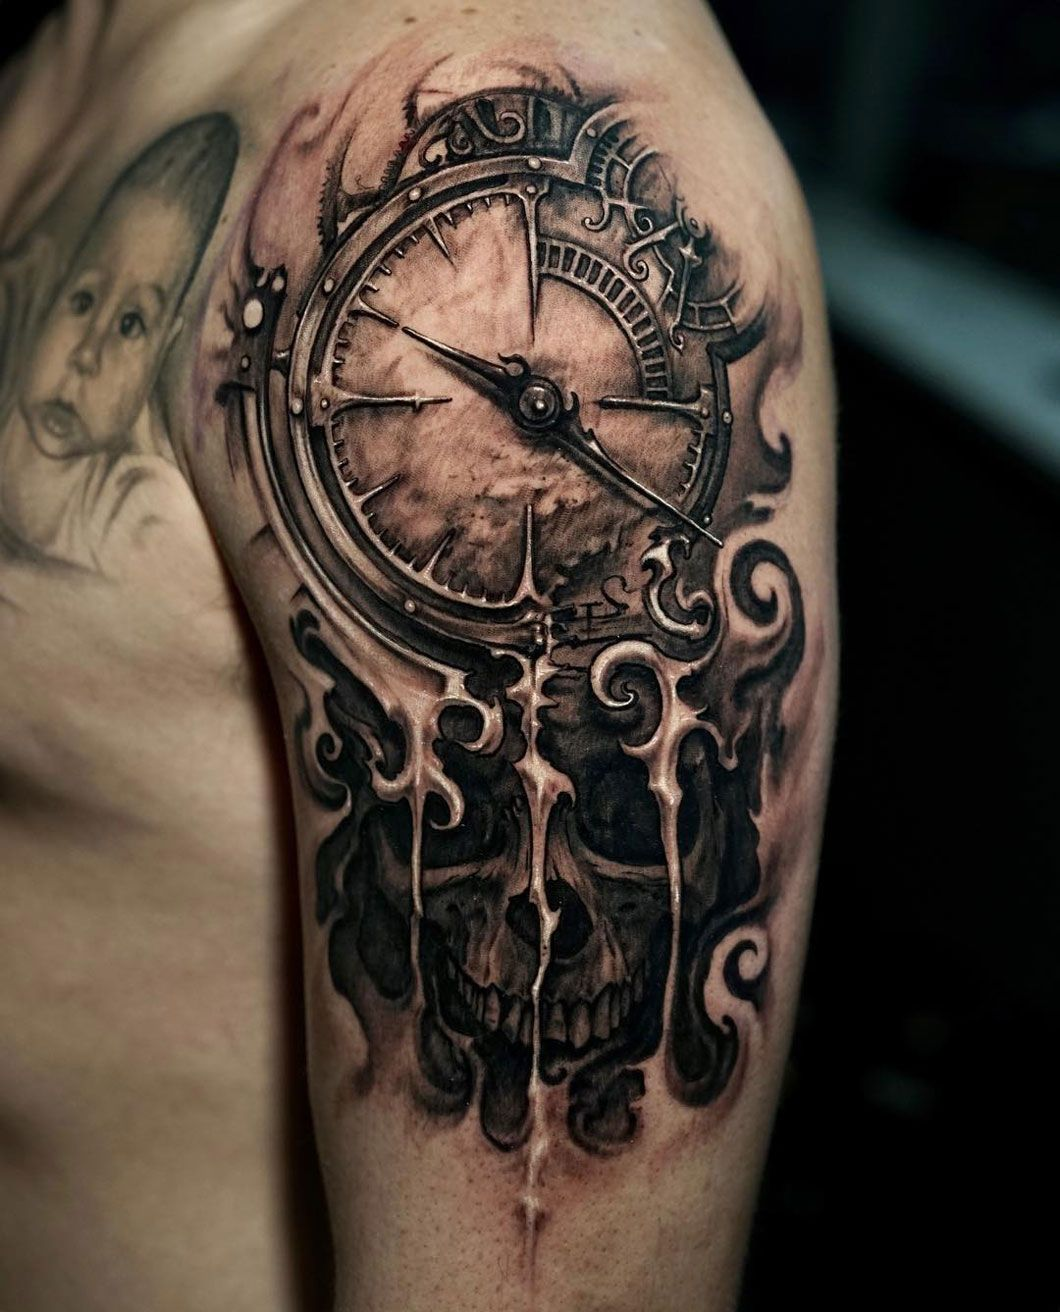 Clock Tattoos For Guys: Cool Tattoos For Guys, Tattoos For Guys